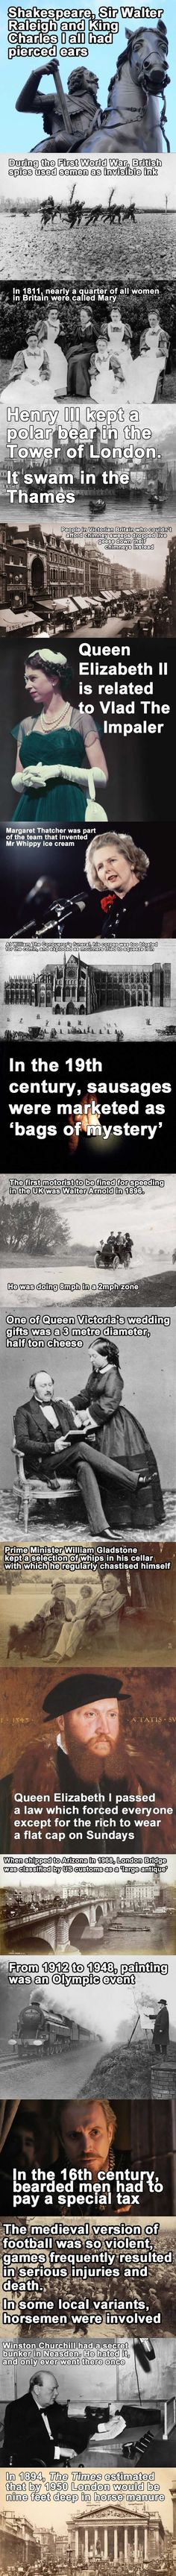 19 Facts of British History.that you probably could have lived without BUT enjoy! I love British history Cultura General, Wtf Fun Facts, Crazy Facts, Random Facts, Funny Facts, Random Stuff, Interesting History, Interesting Facts, Awesome Facts